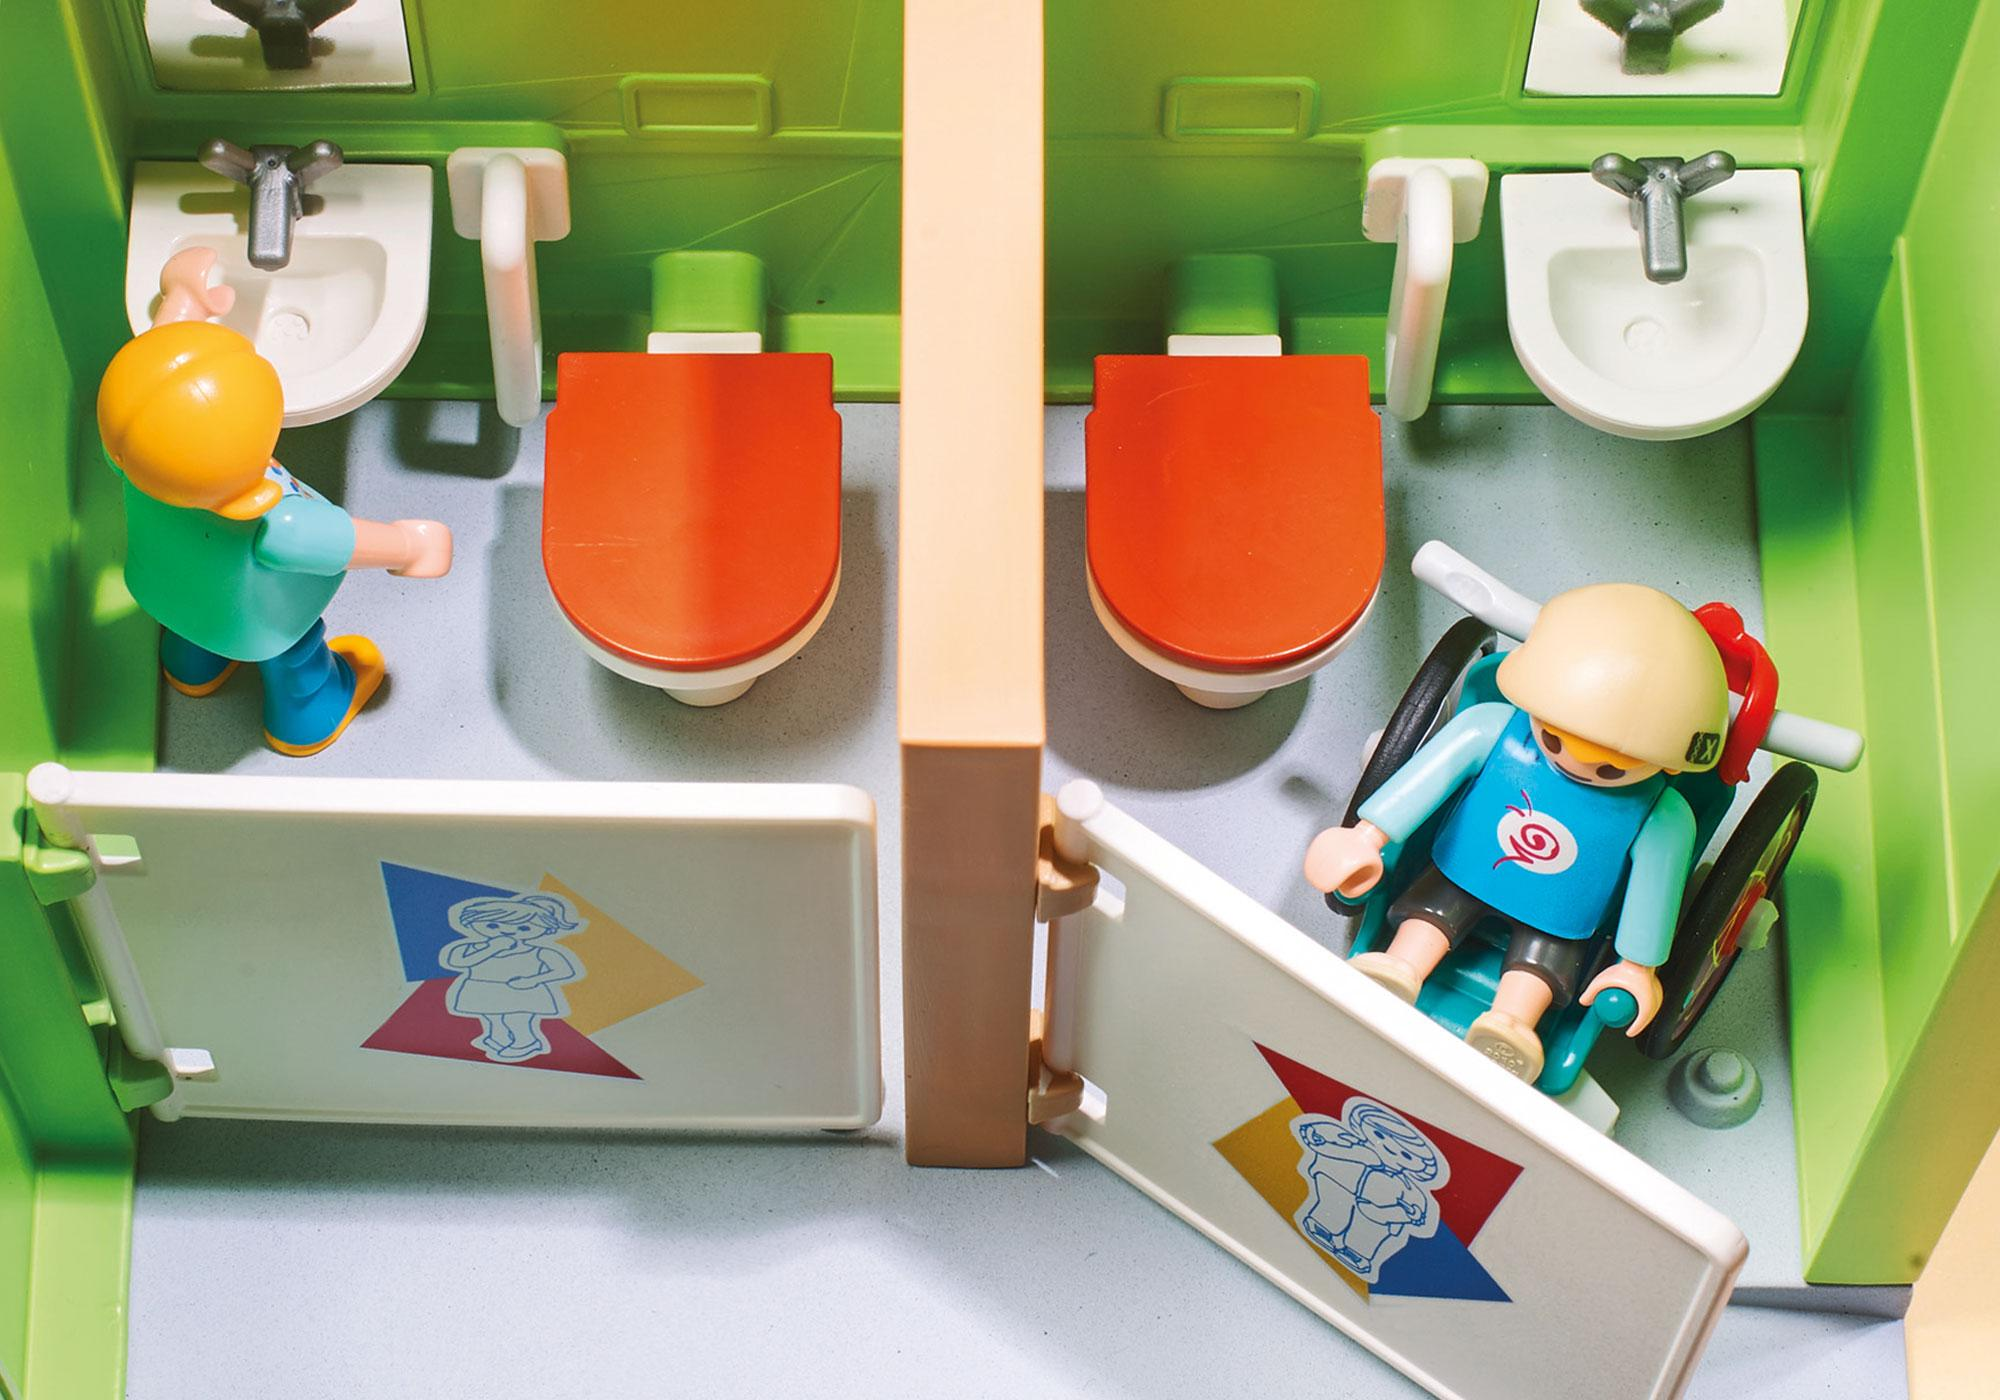 http://media.playmobil.com/i/playmobil/9453_product_extra3/Große Schule mit Einrichtung